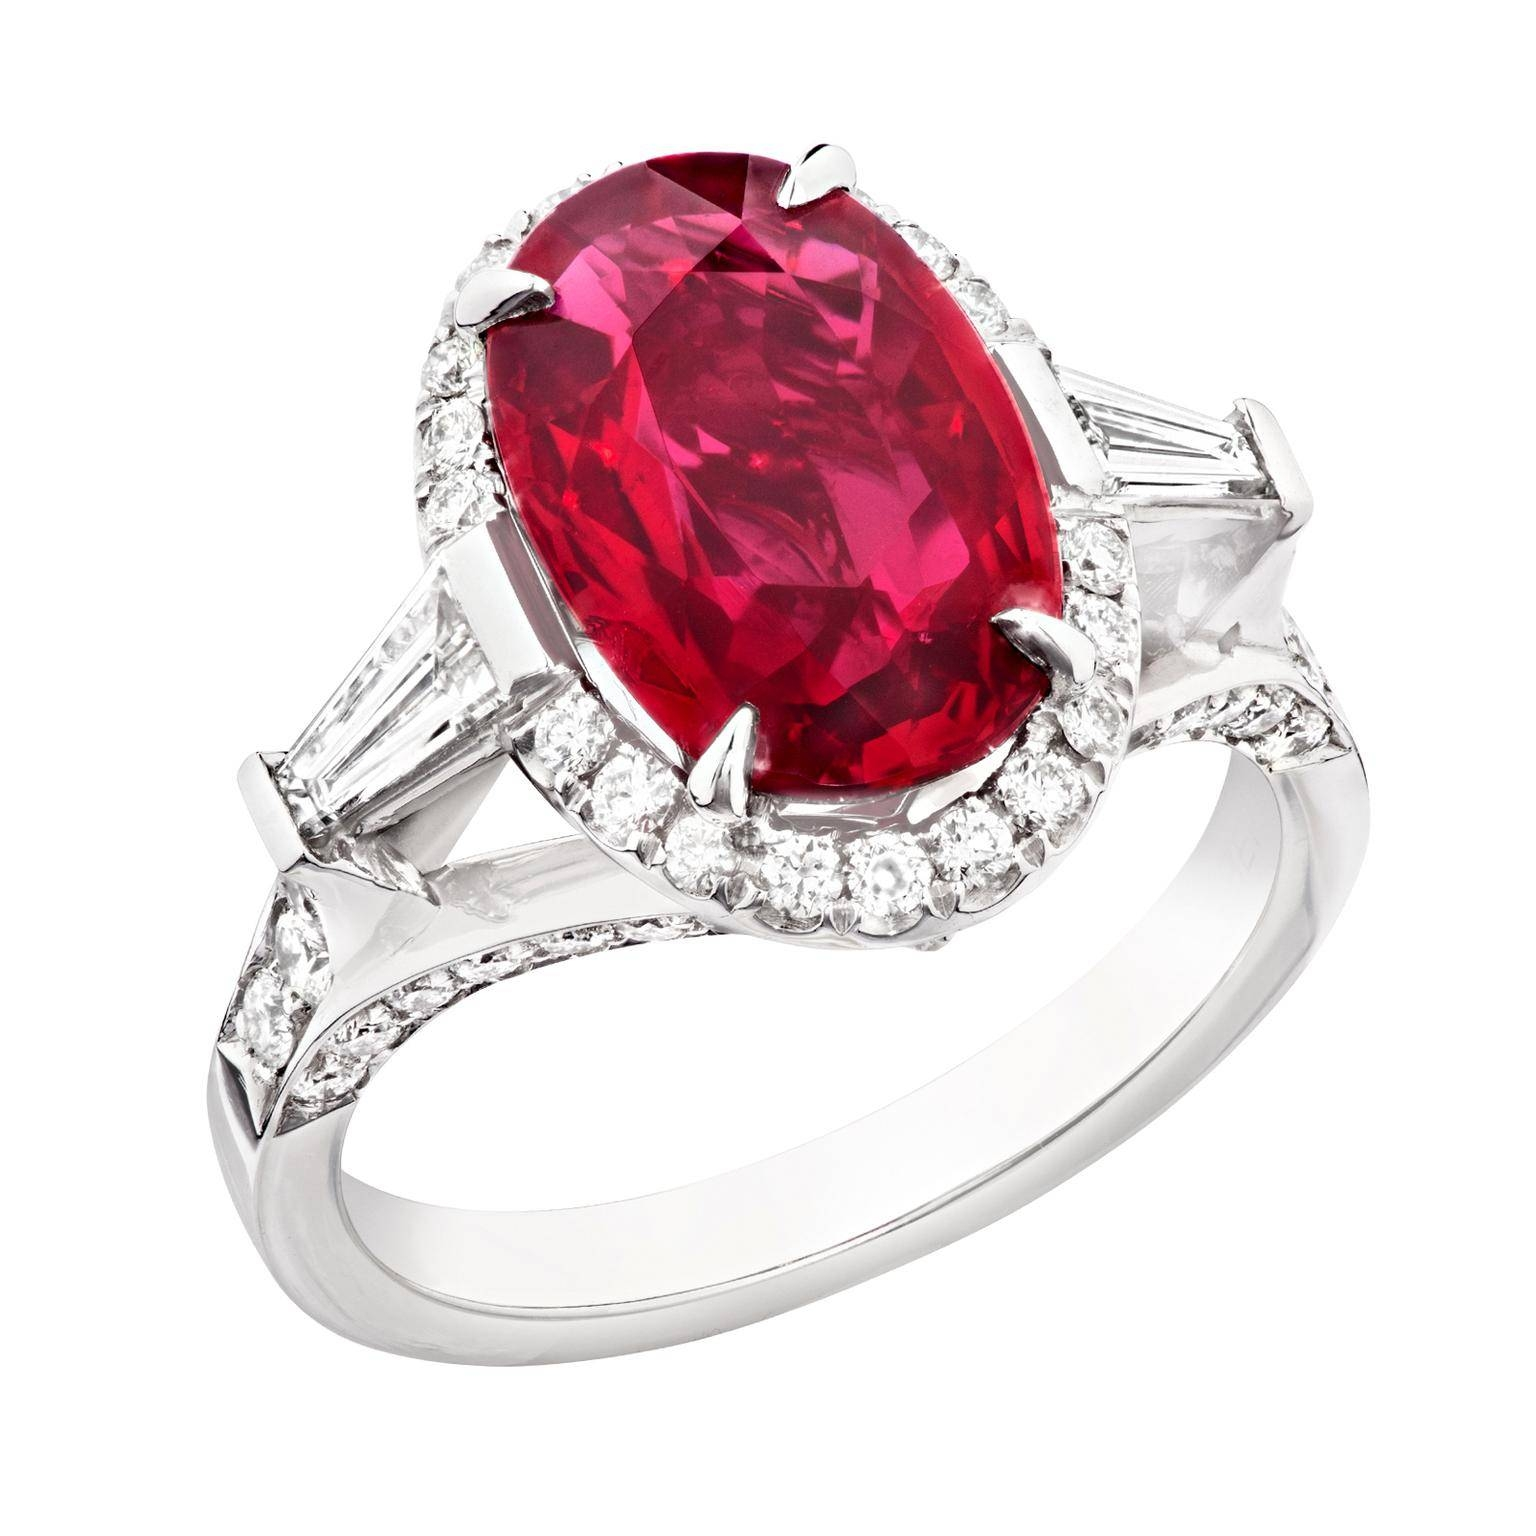 Oval Ruby Engagement Ring | Fabergé | The Jewellery Editor With Ruby Engagement Rings (Gallery 15 of 15)